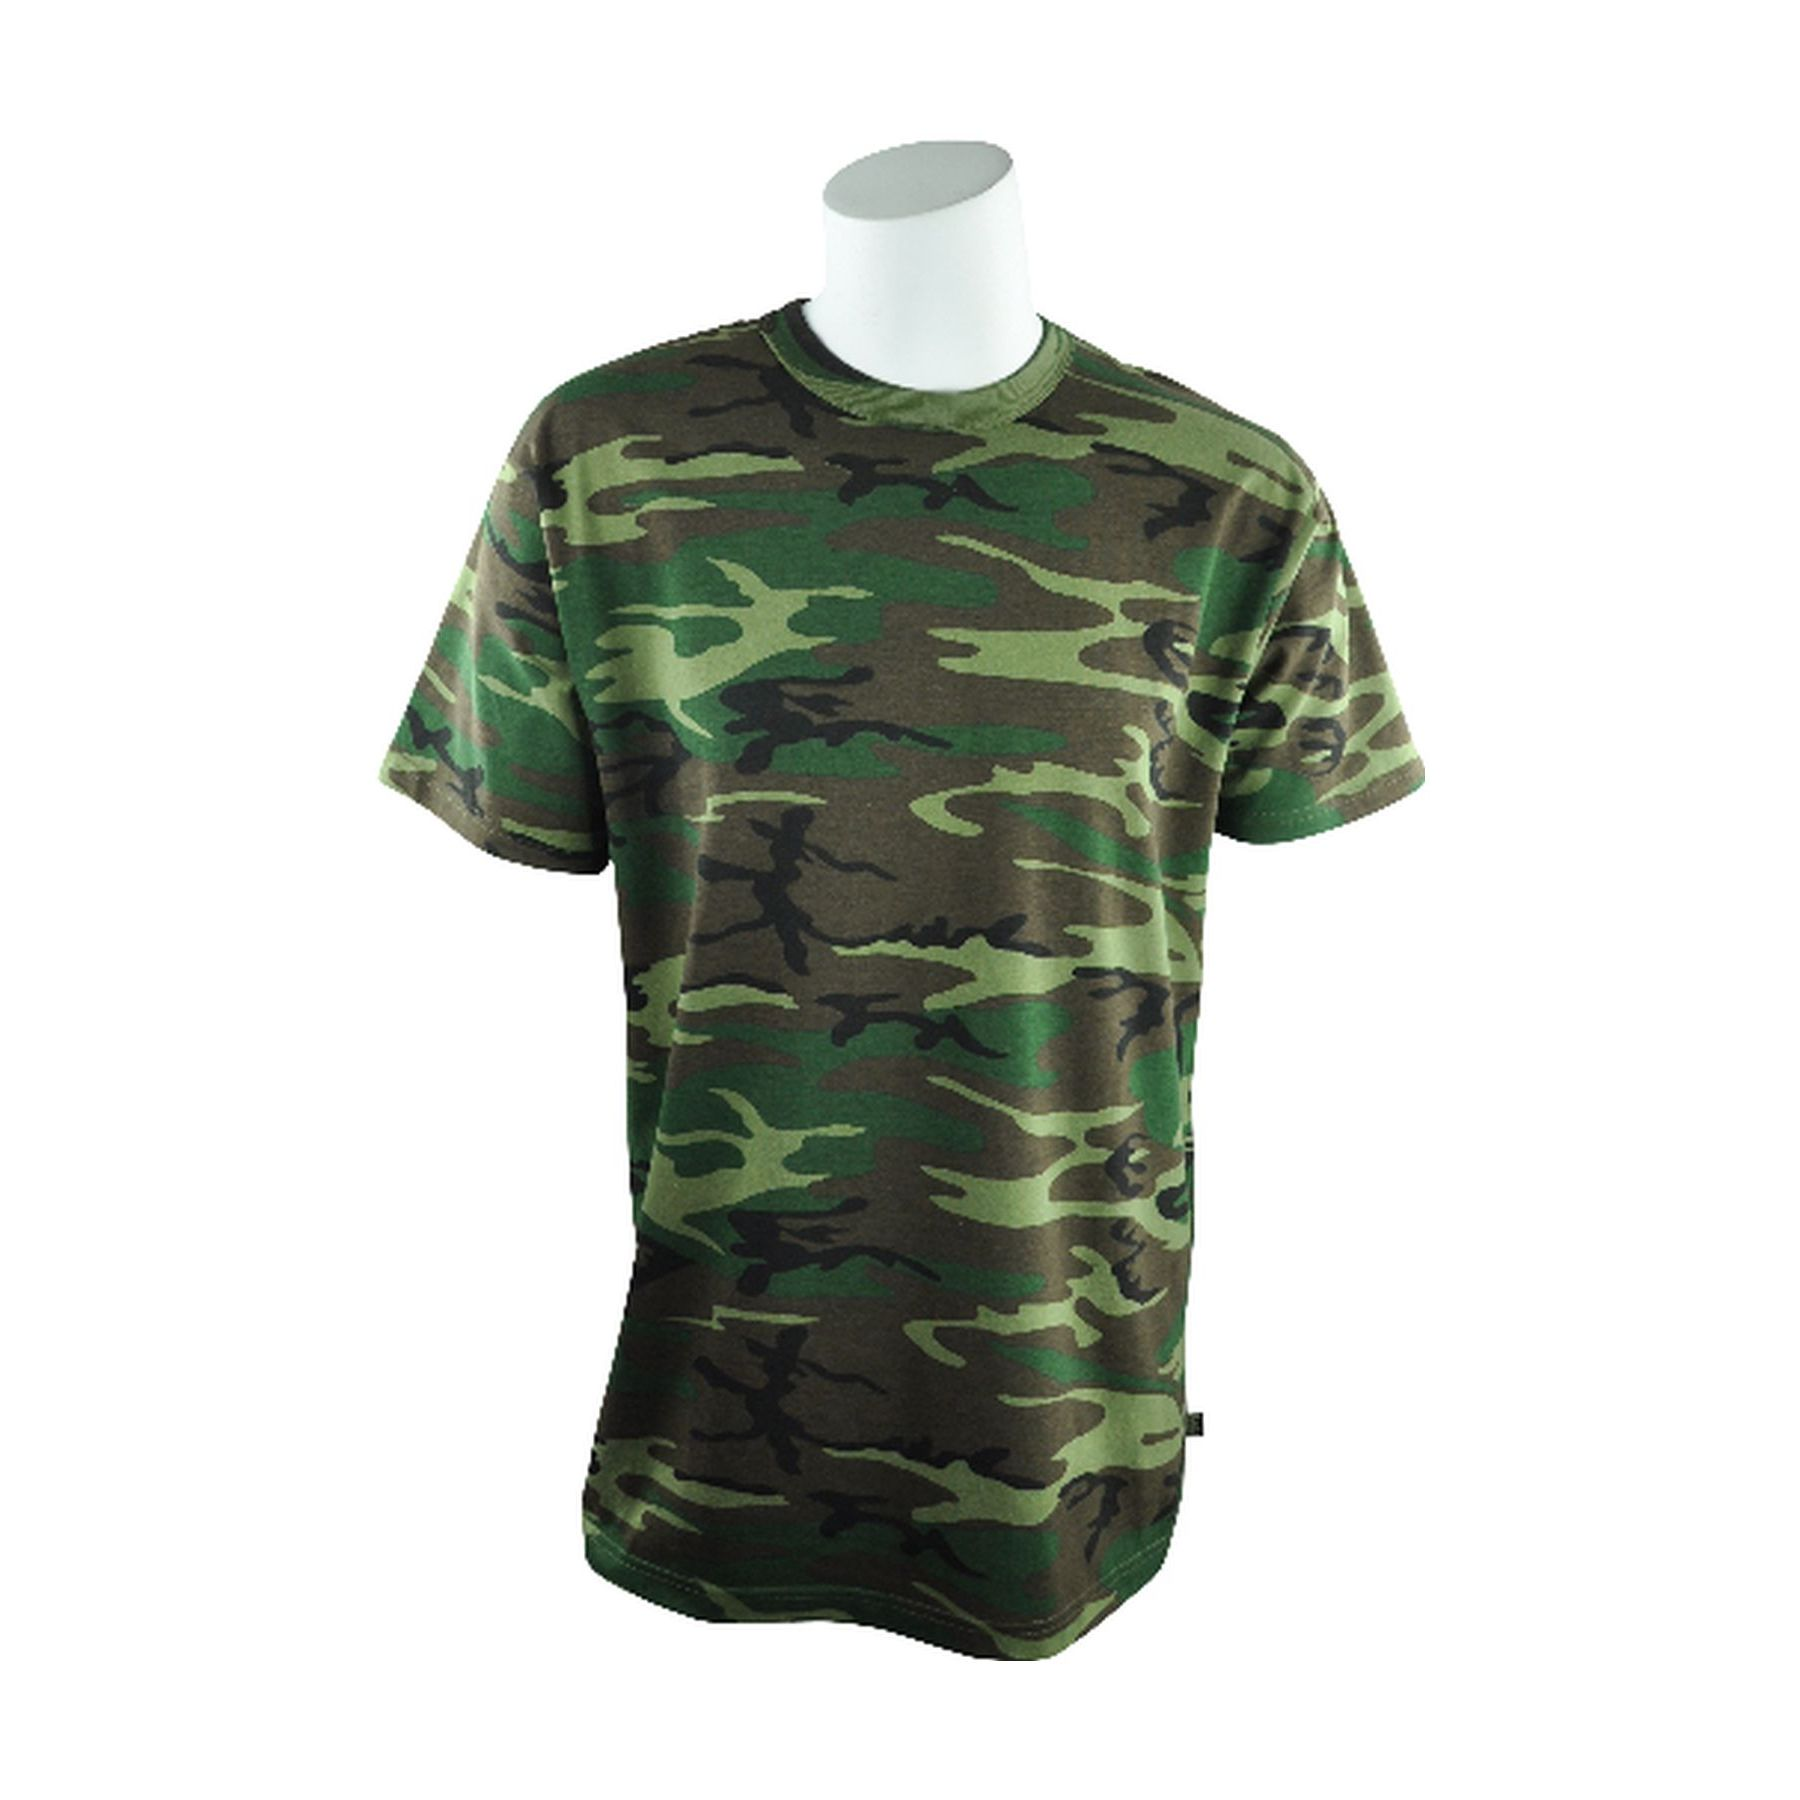 Adult Camo T Shirt Style Tcl1030r Tmt Canada